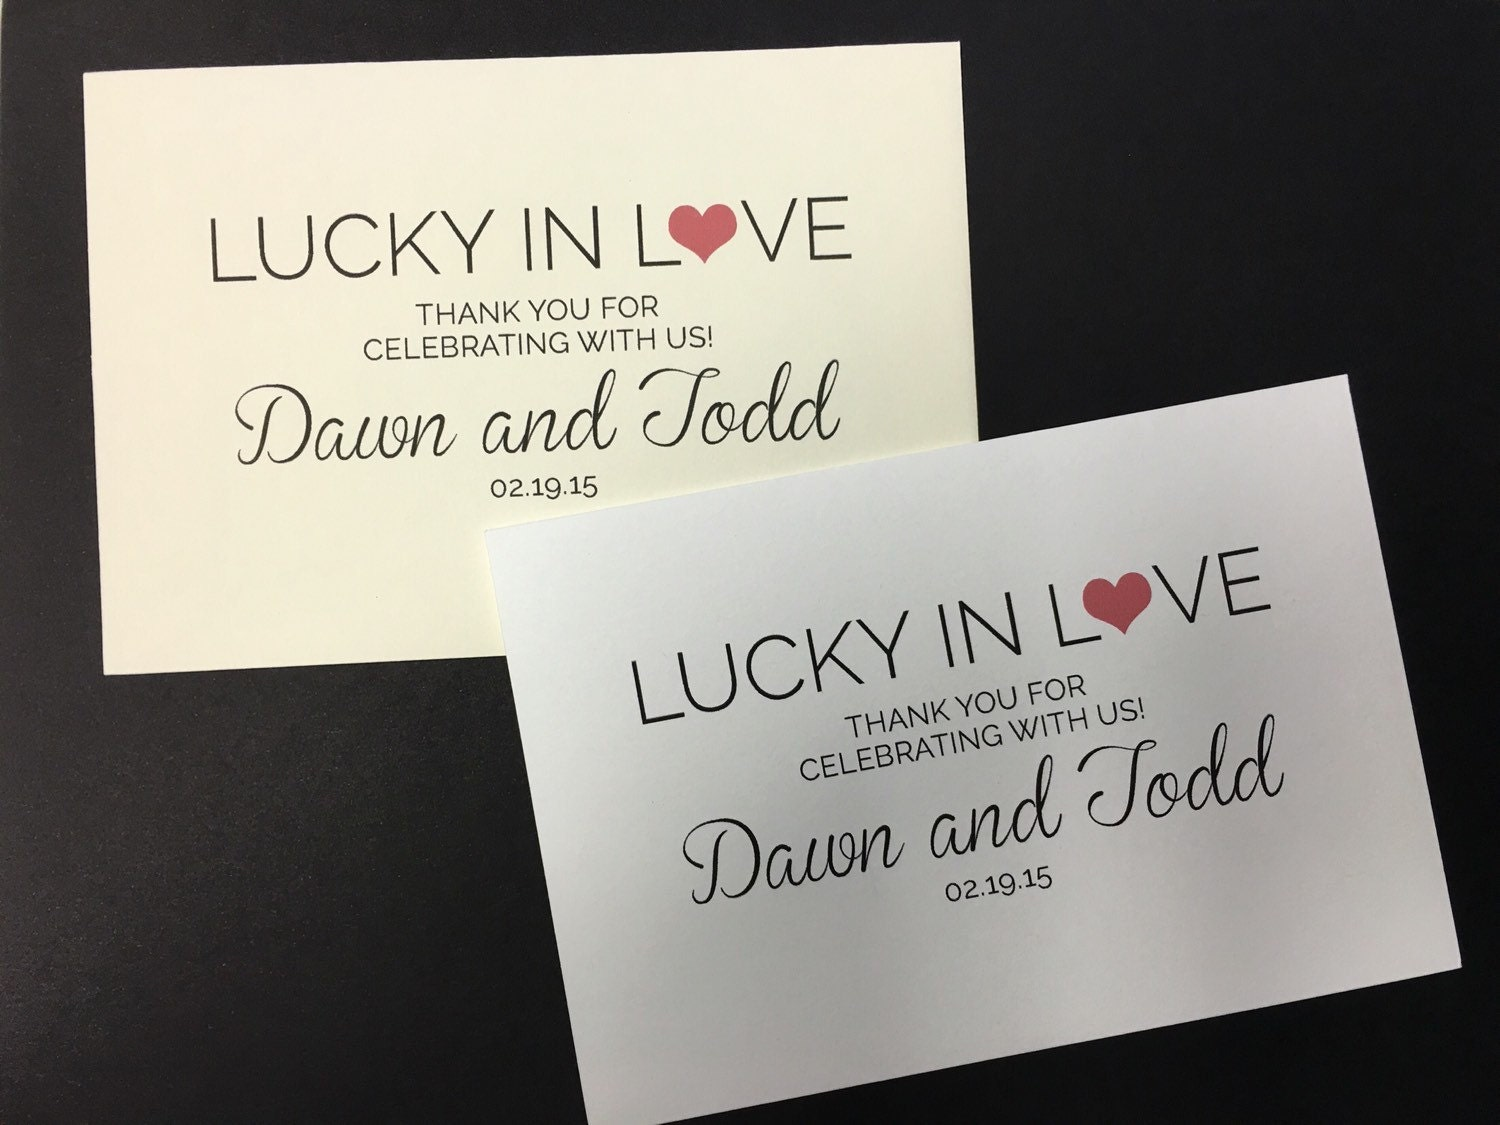 Lucky In Love - Personalized Lottery Ticket Favor Envelope from ...